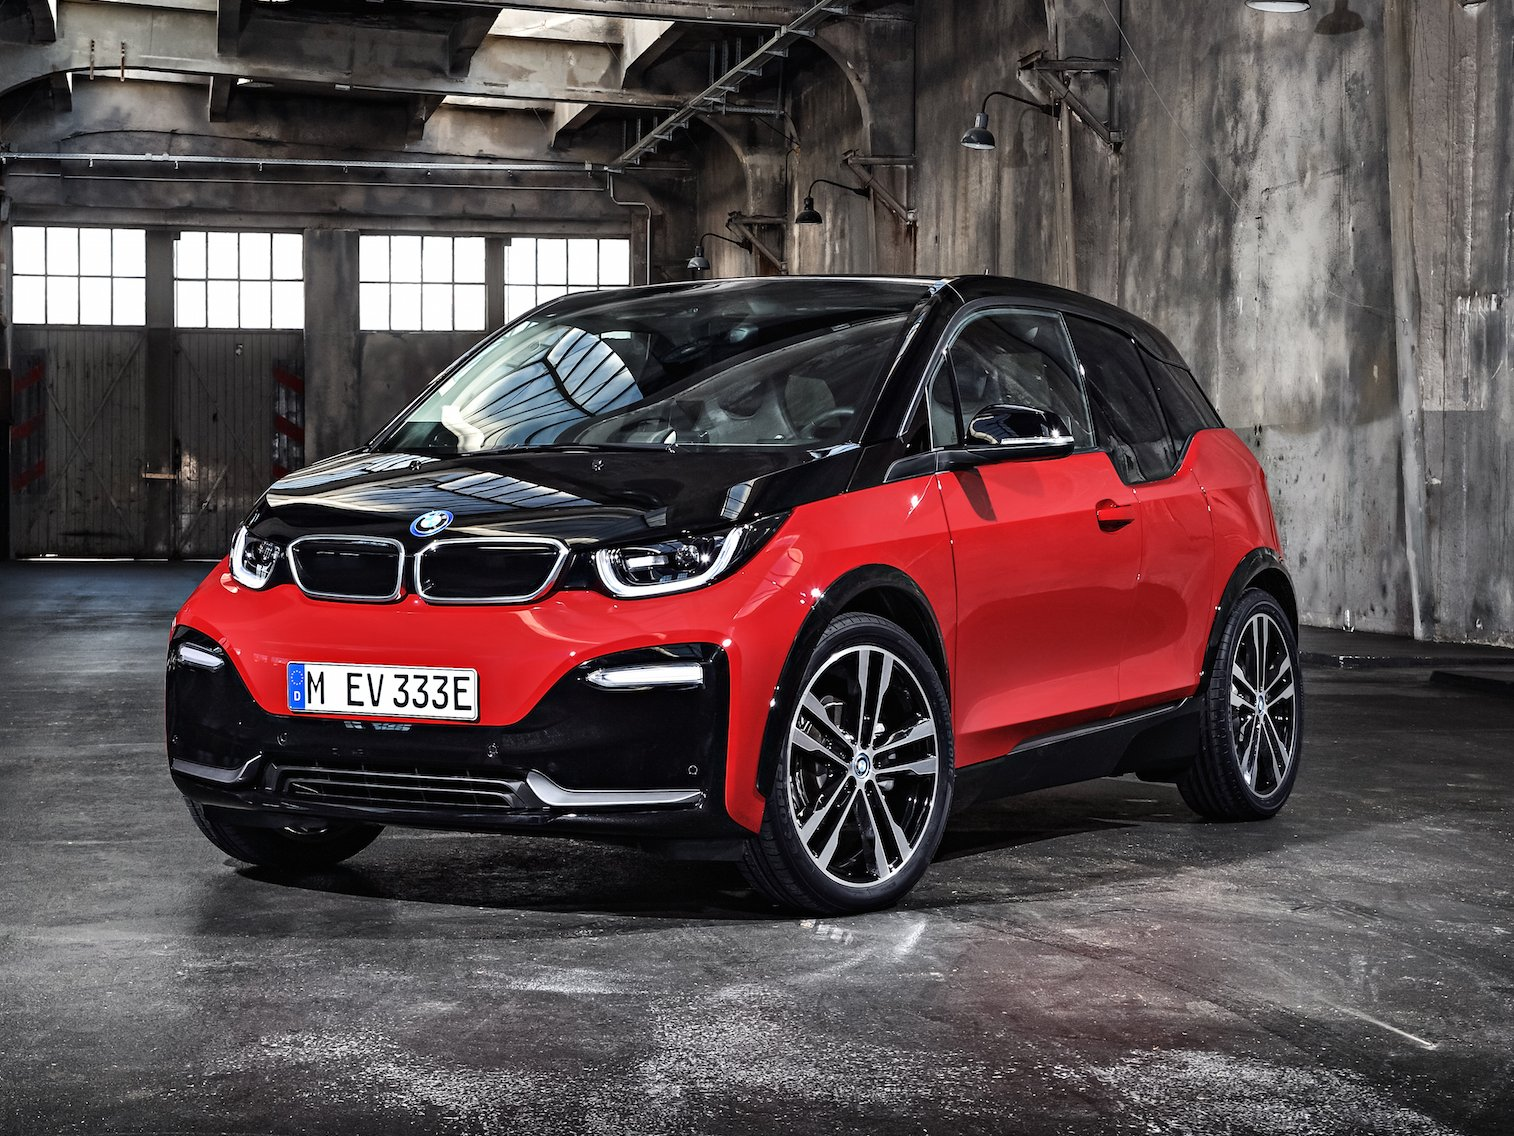 BMW Has Introduced A Sportier Version Of Its Popular I3 Compact Sedan  Dubbed The I3s. The New, Sleeker, Performance Focused I3 Features An  Improved Design ...